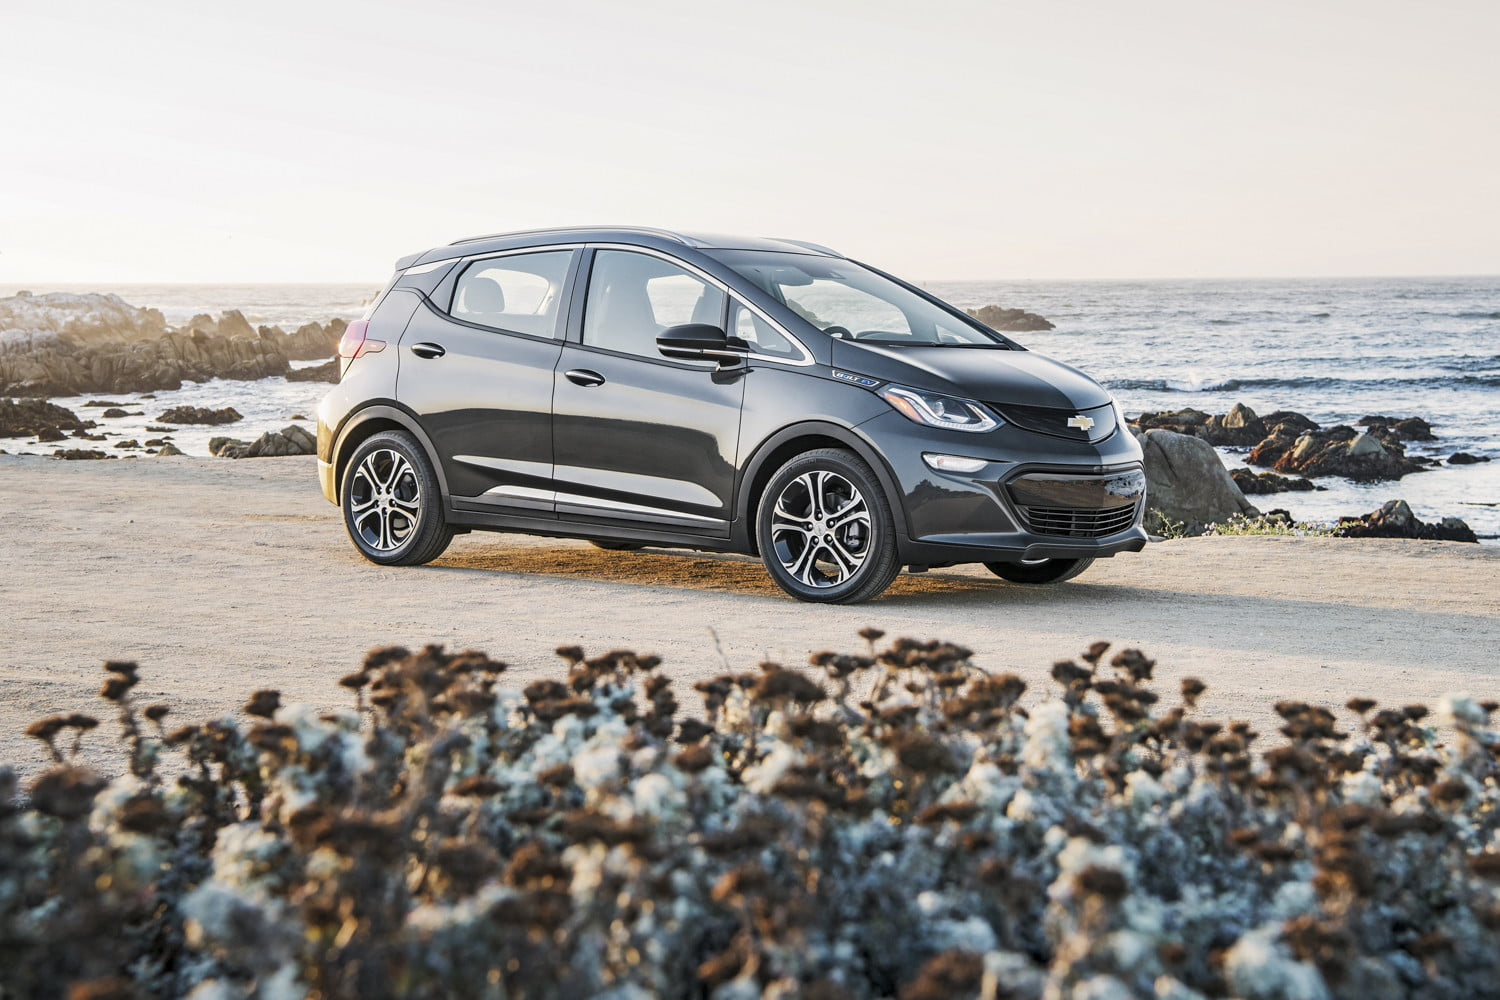 2018 Chevy Bolt EV: Changes, Mileage, Price >> Chevy Bolt Vs Volt Specs Design Price And More